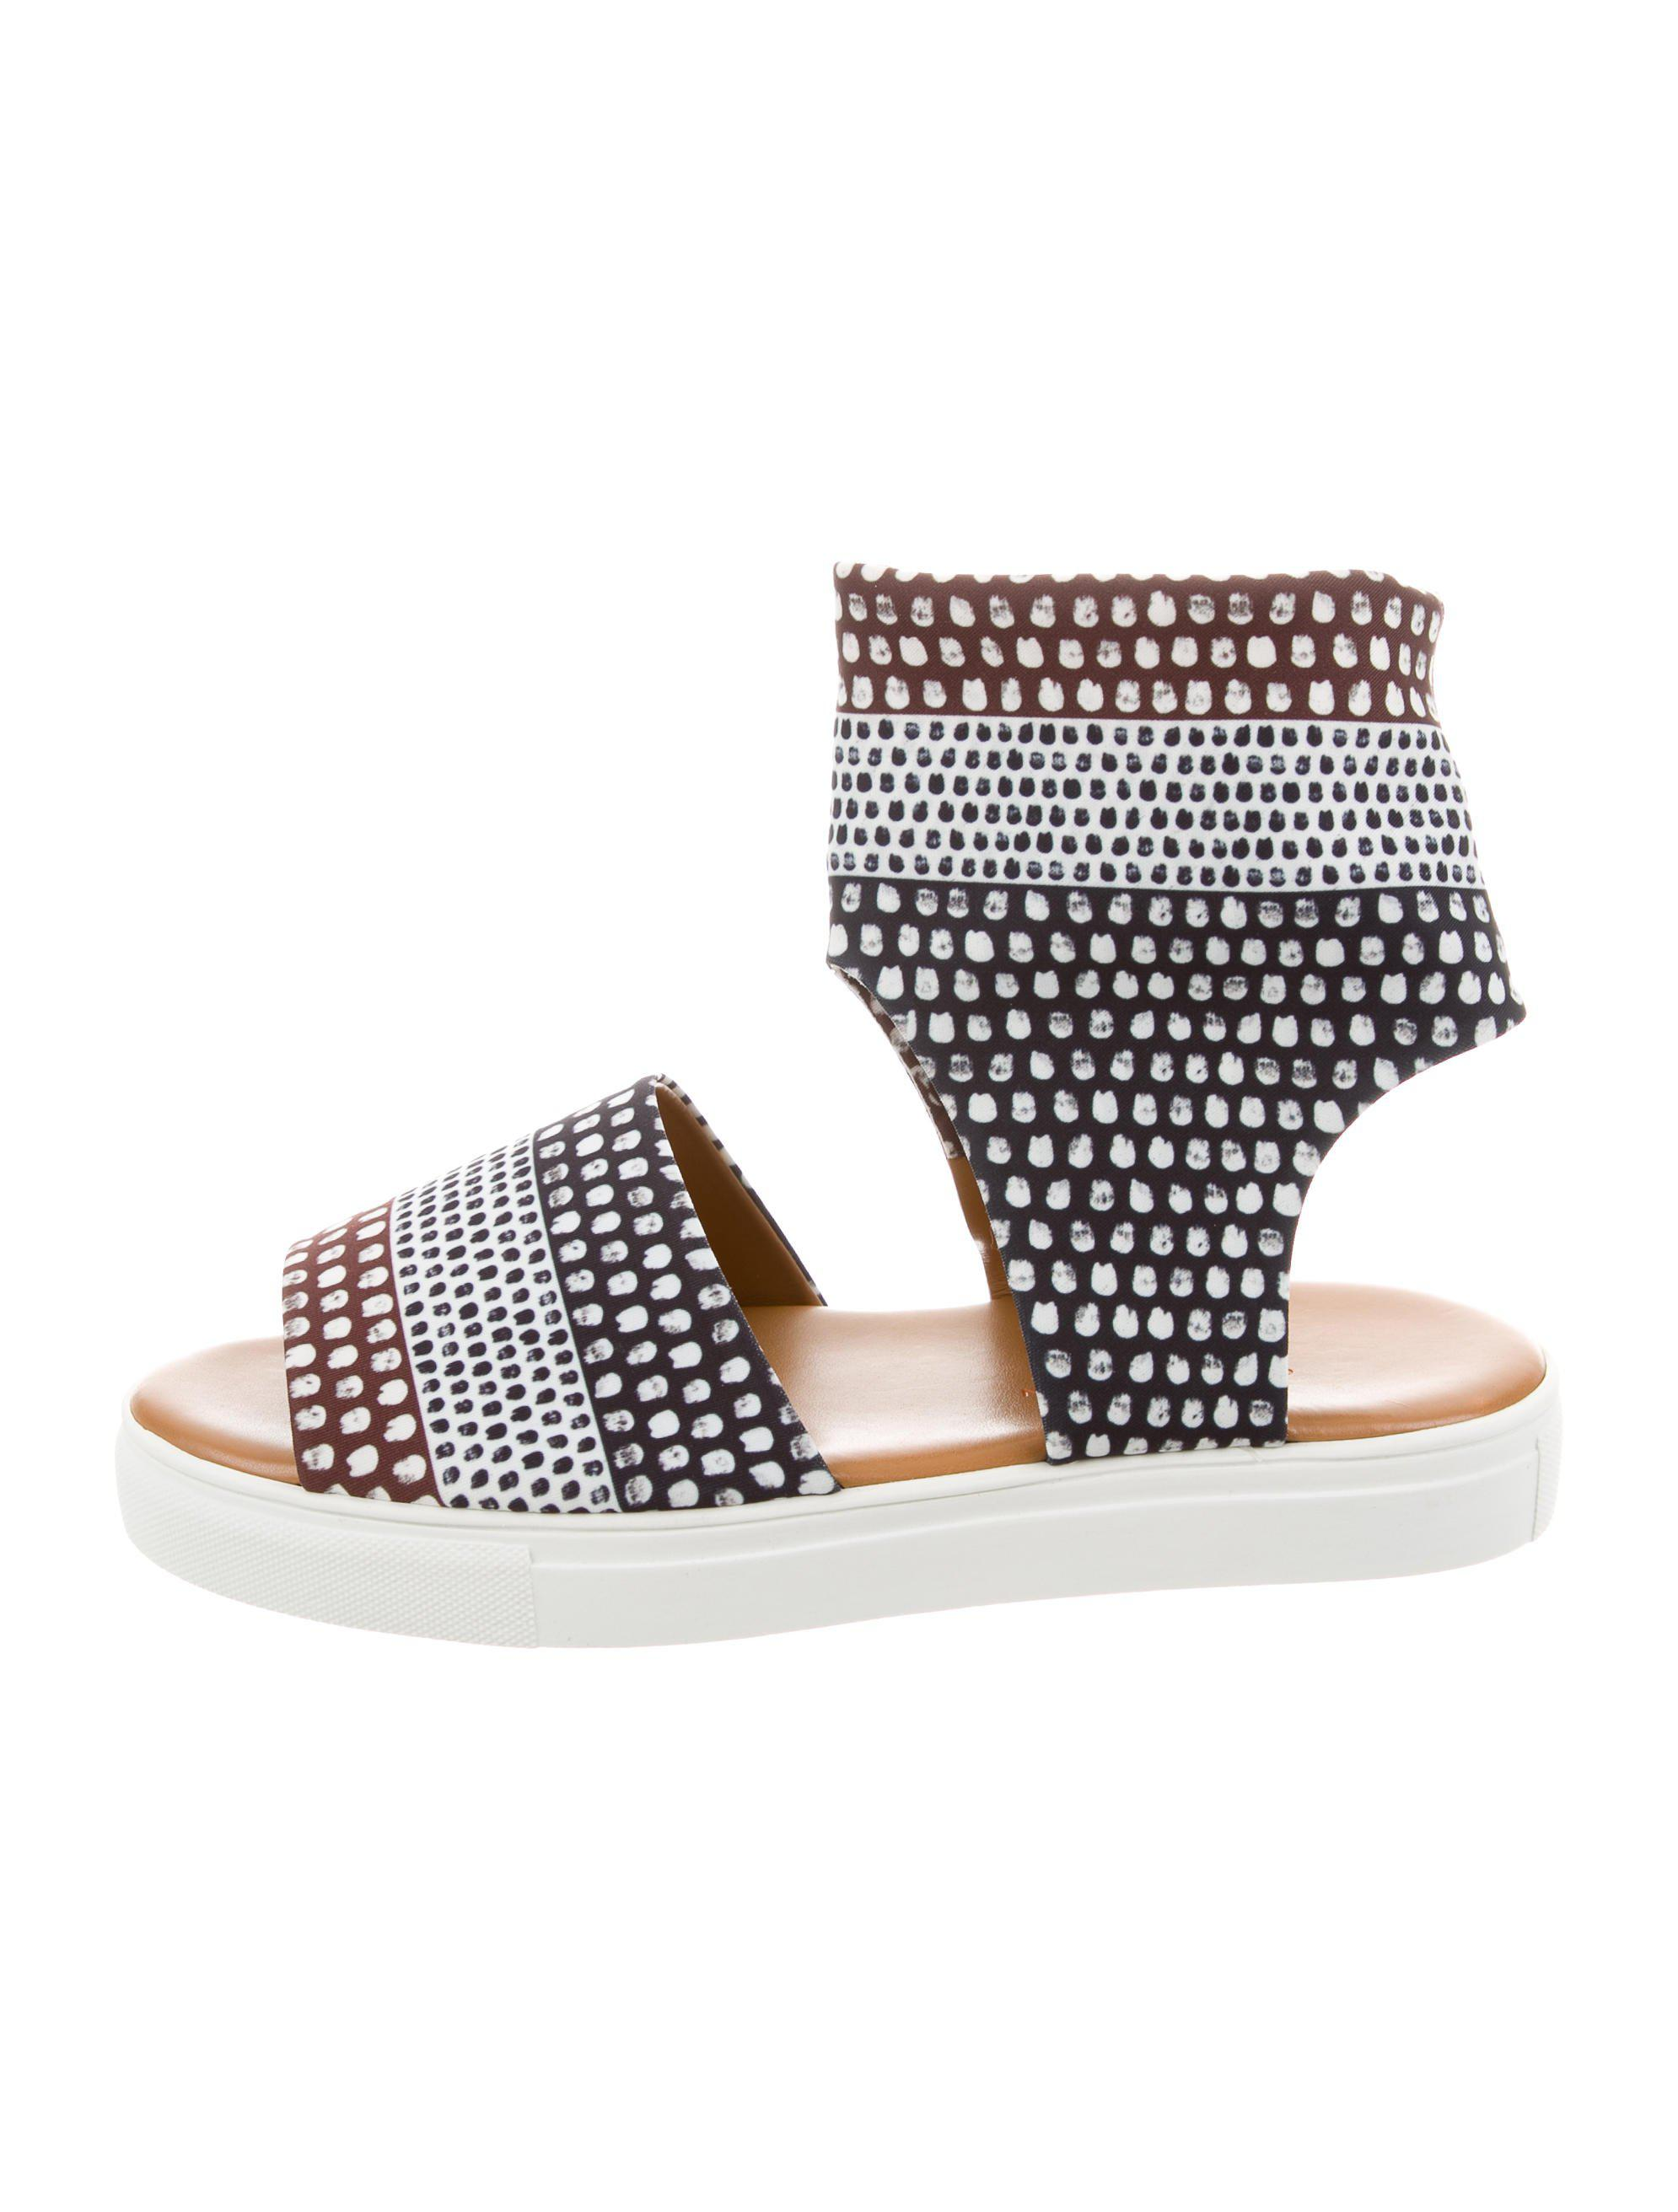 Clover Canyon Flourishing Oasis Sandals cheap sale outlet locations 54zNedMMOQ